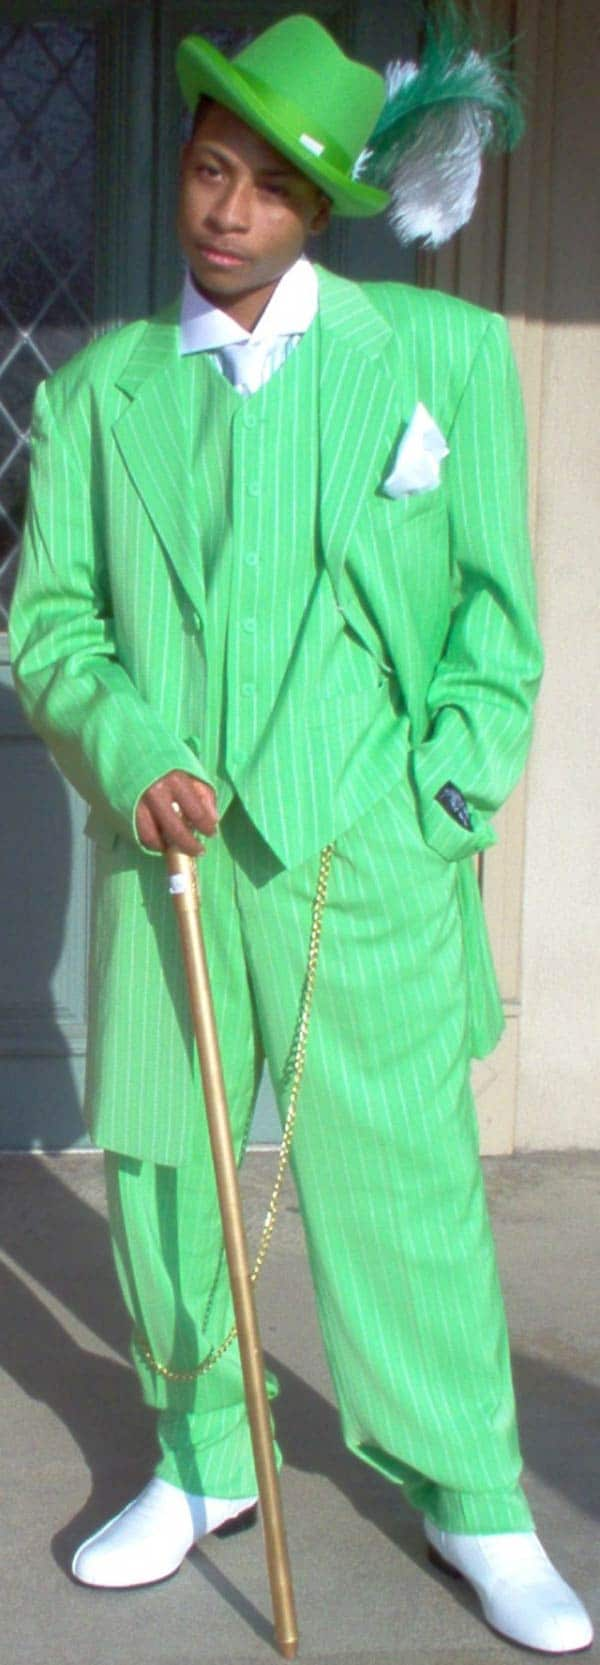 Green Suits - Looking Mean In Green - Men Style Fashion